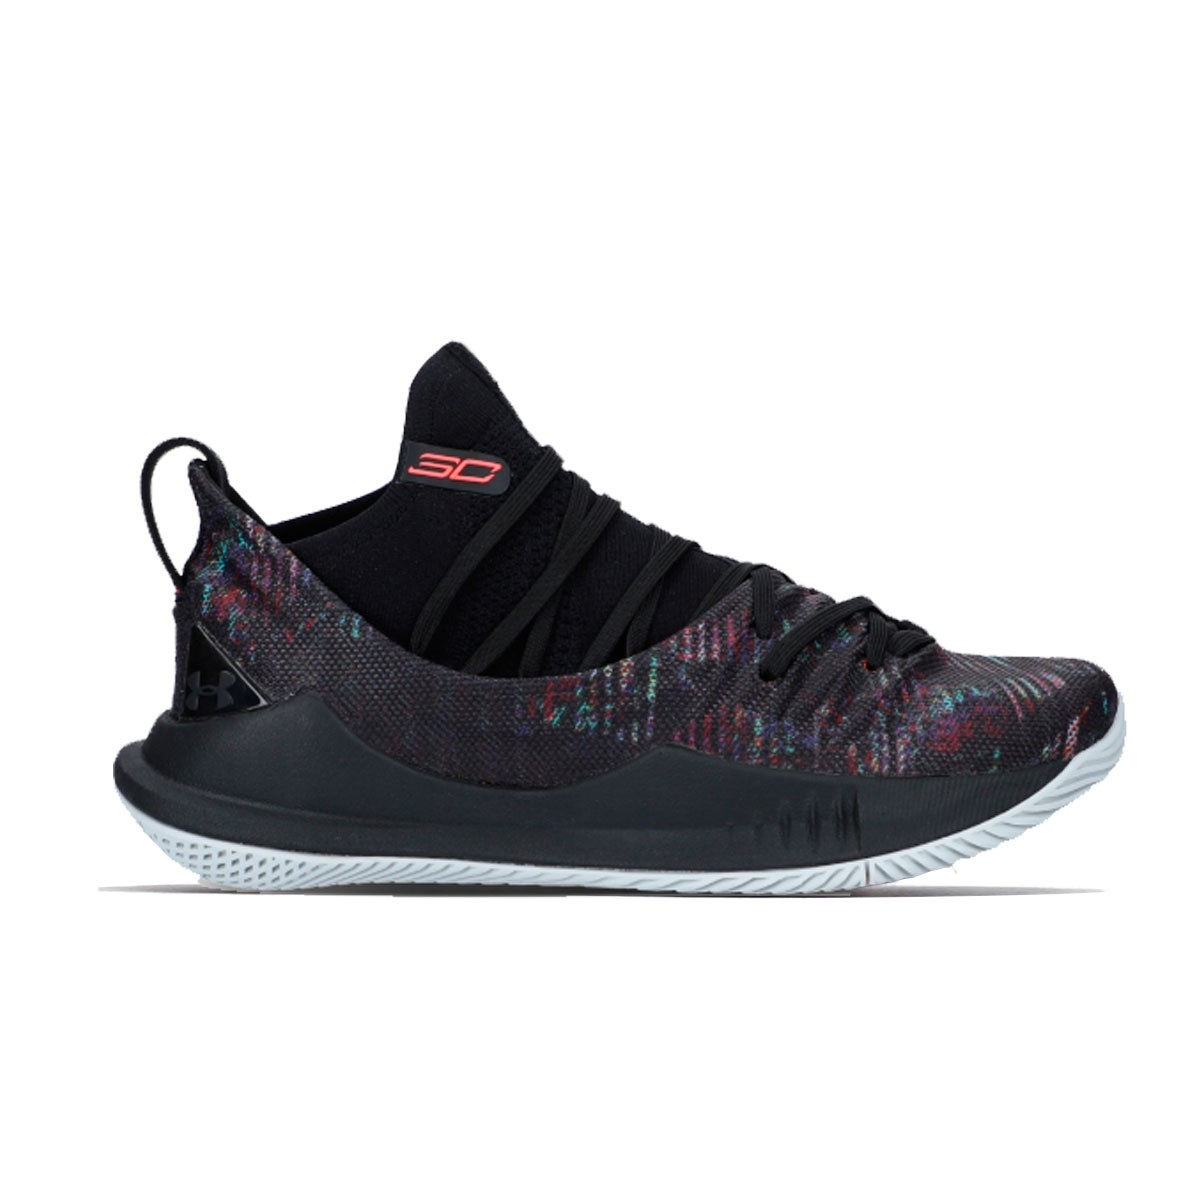 9110dc933b1 Buy Under Armour Curry 5 'Black Multicolor' Basketball shoes & sneakers